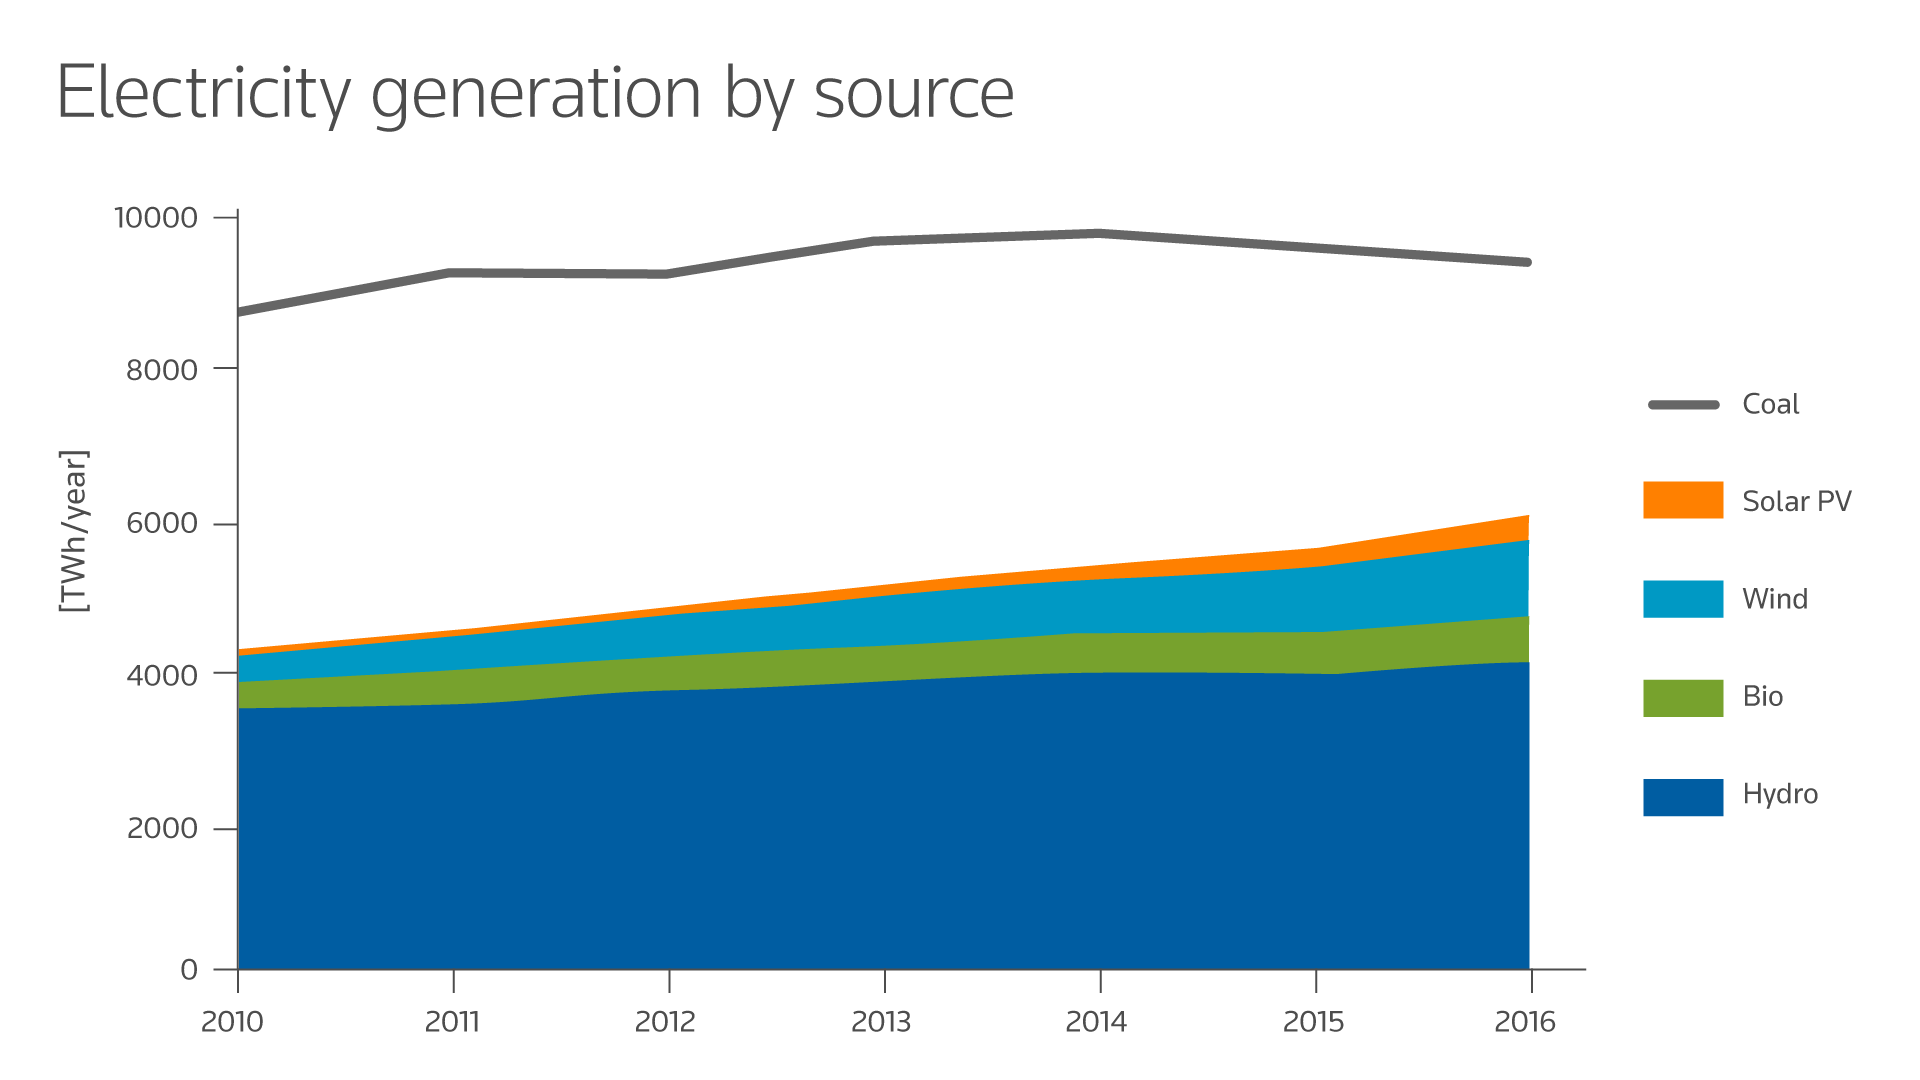 Electricity generation by source chart